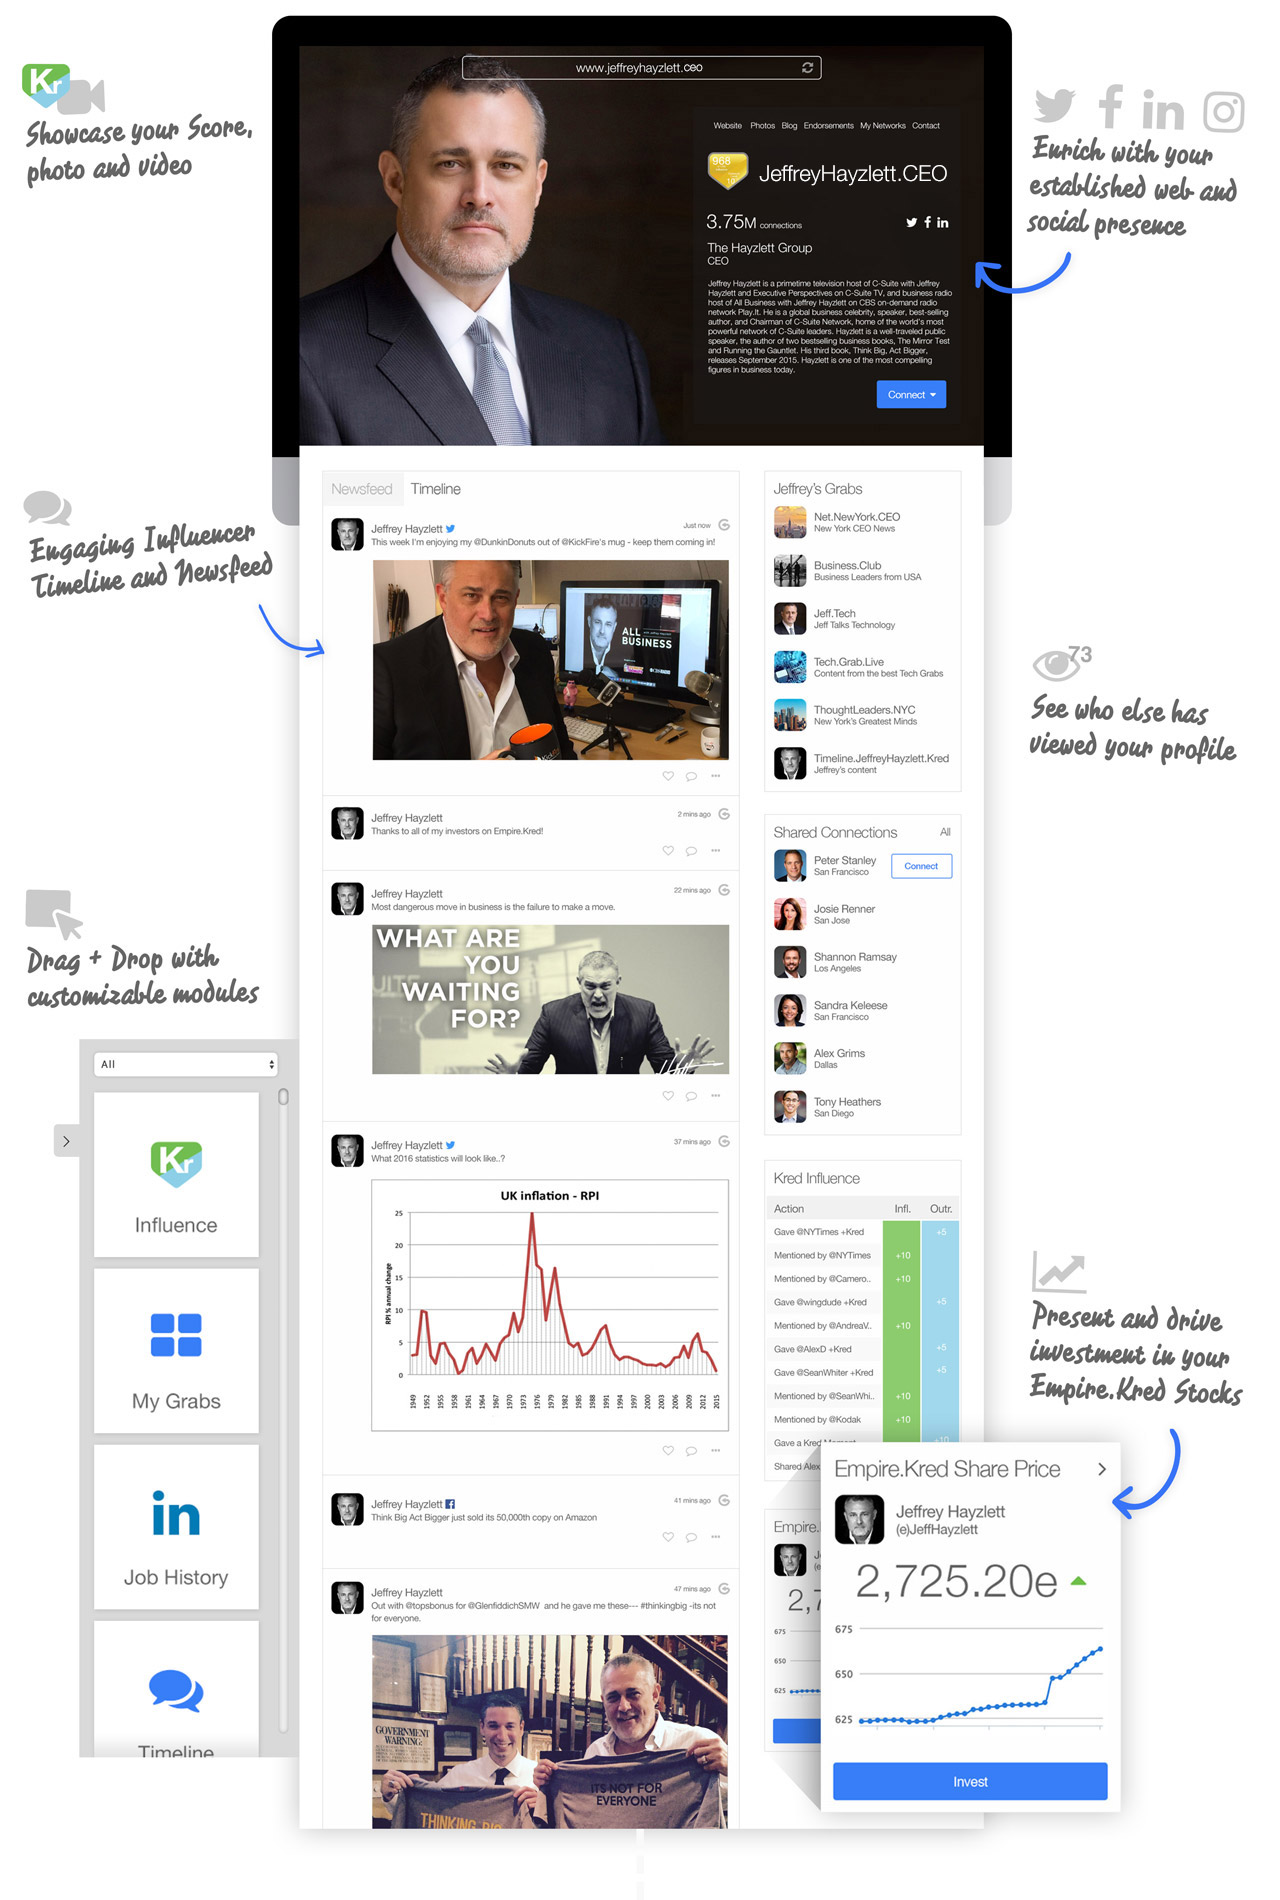 Activate your .CEO Engagement Profile